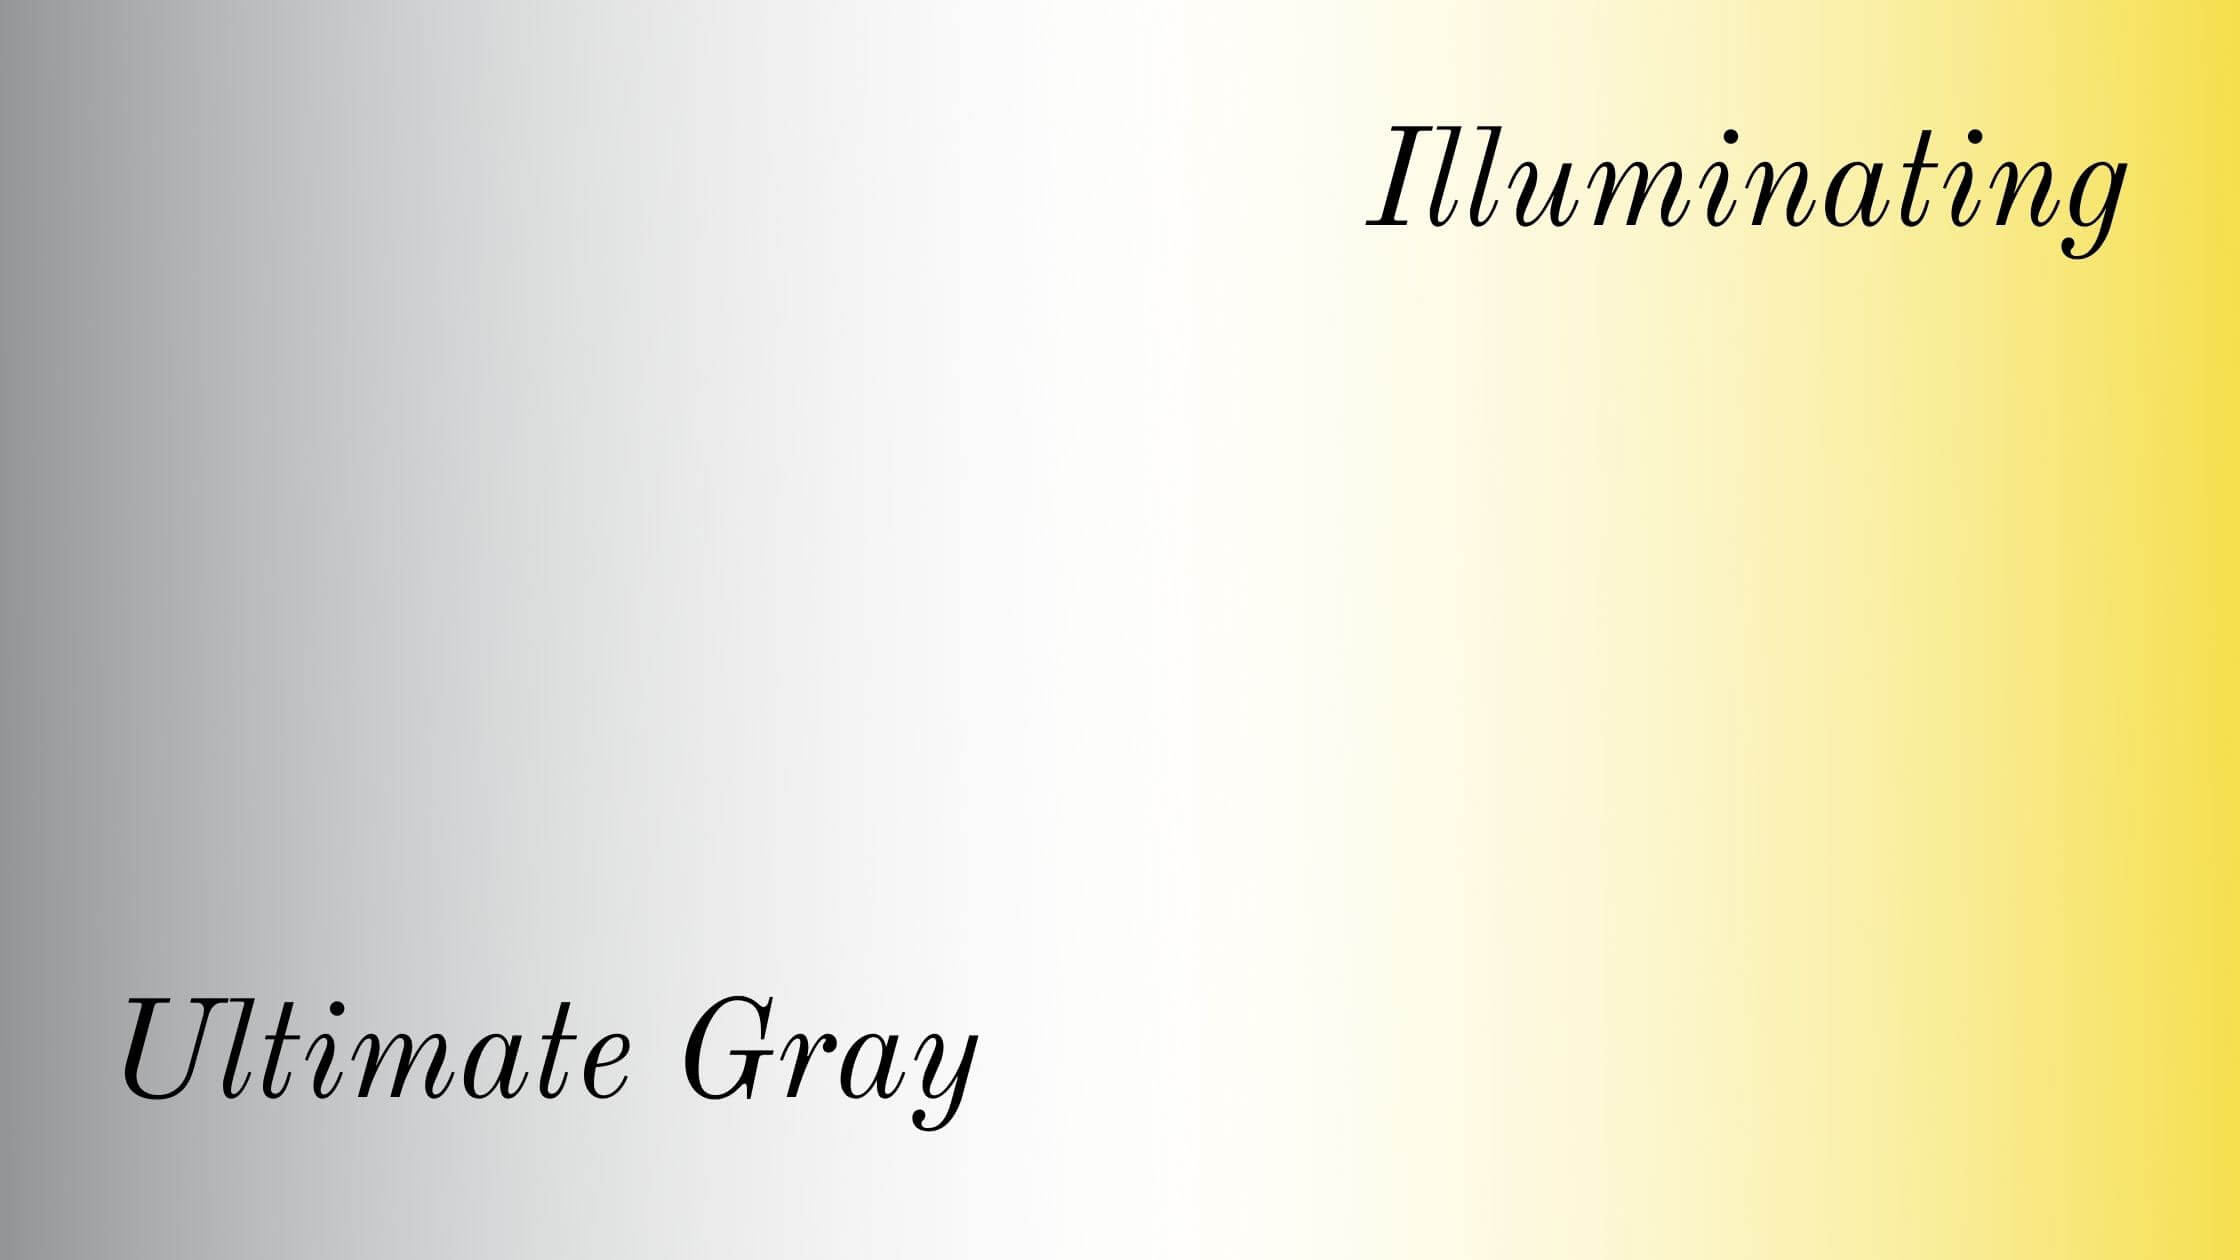 Pantone's color pairing for the year 2021 is Ultimate Gray and Illuminating which is anticipated to be a popular combination in window treatments and design.